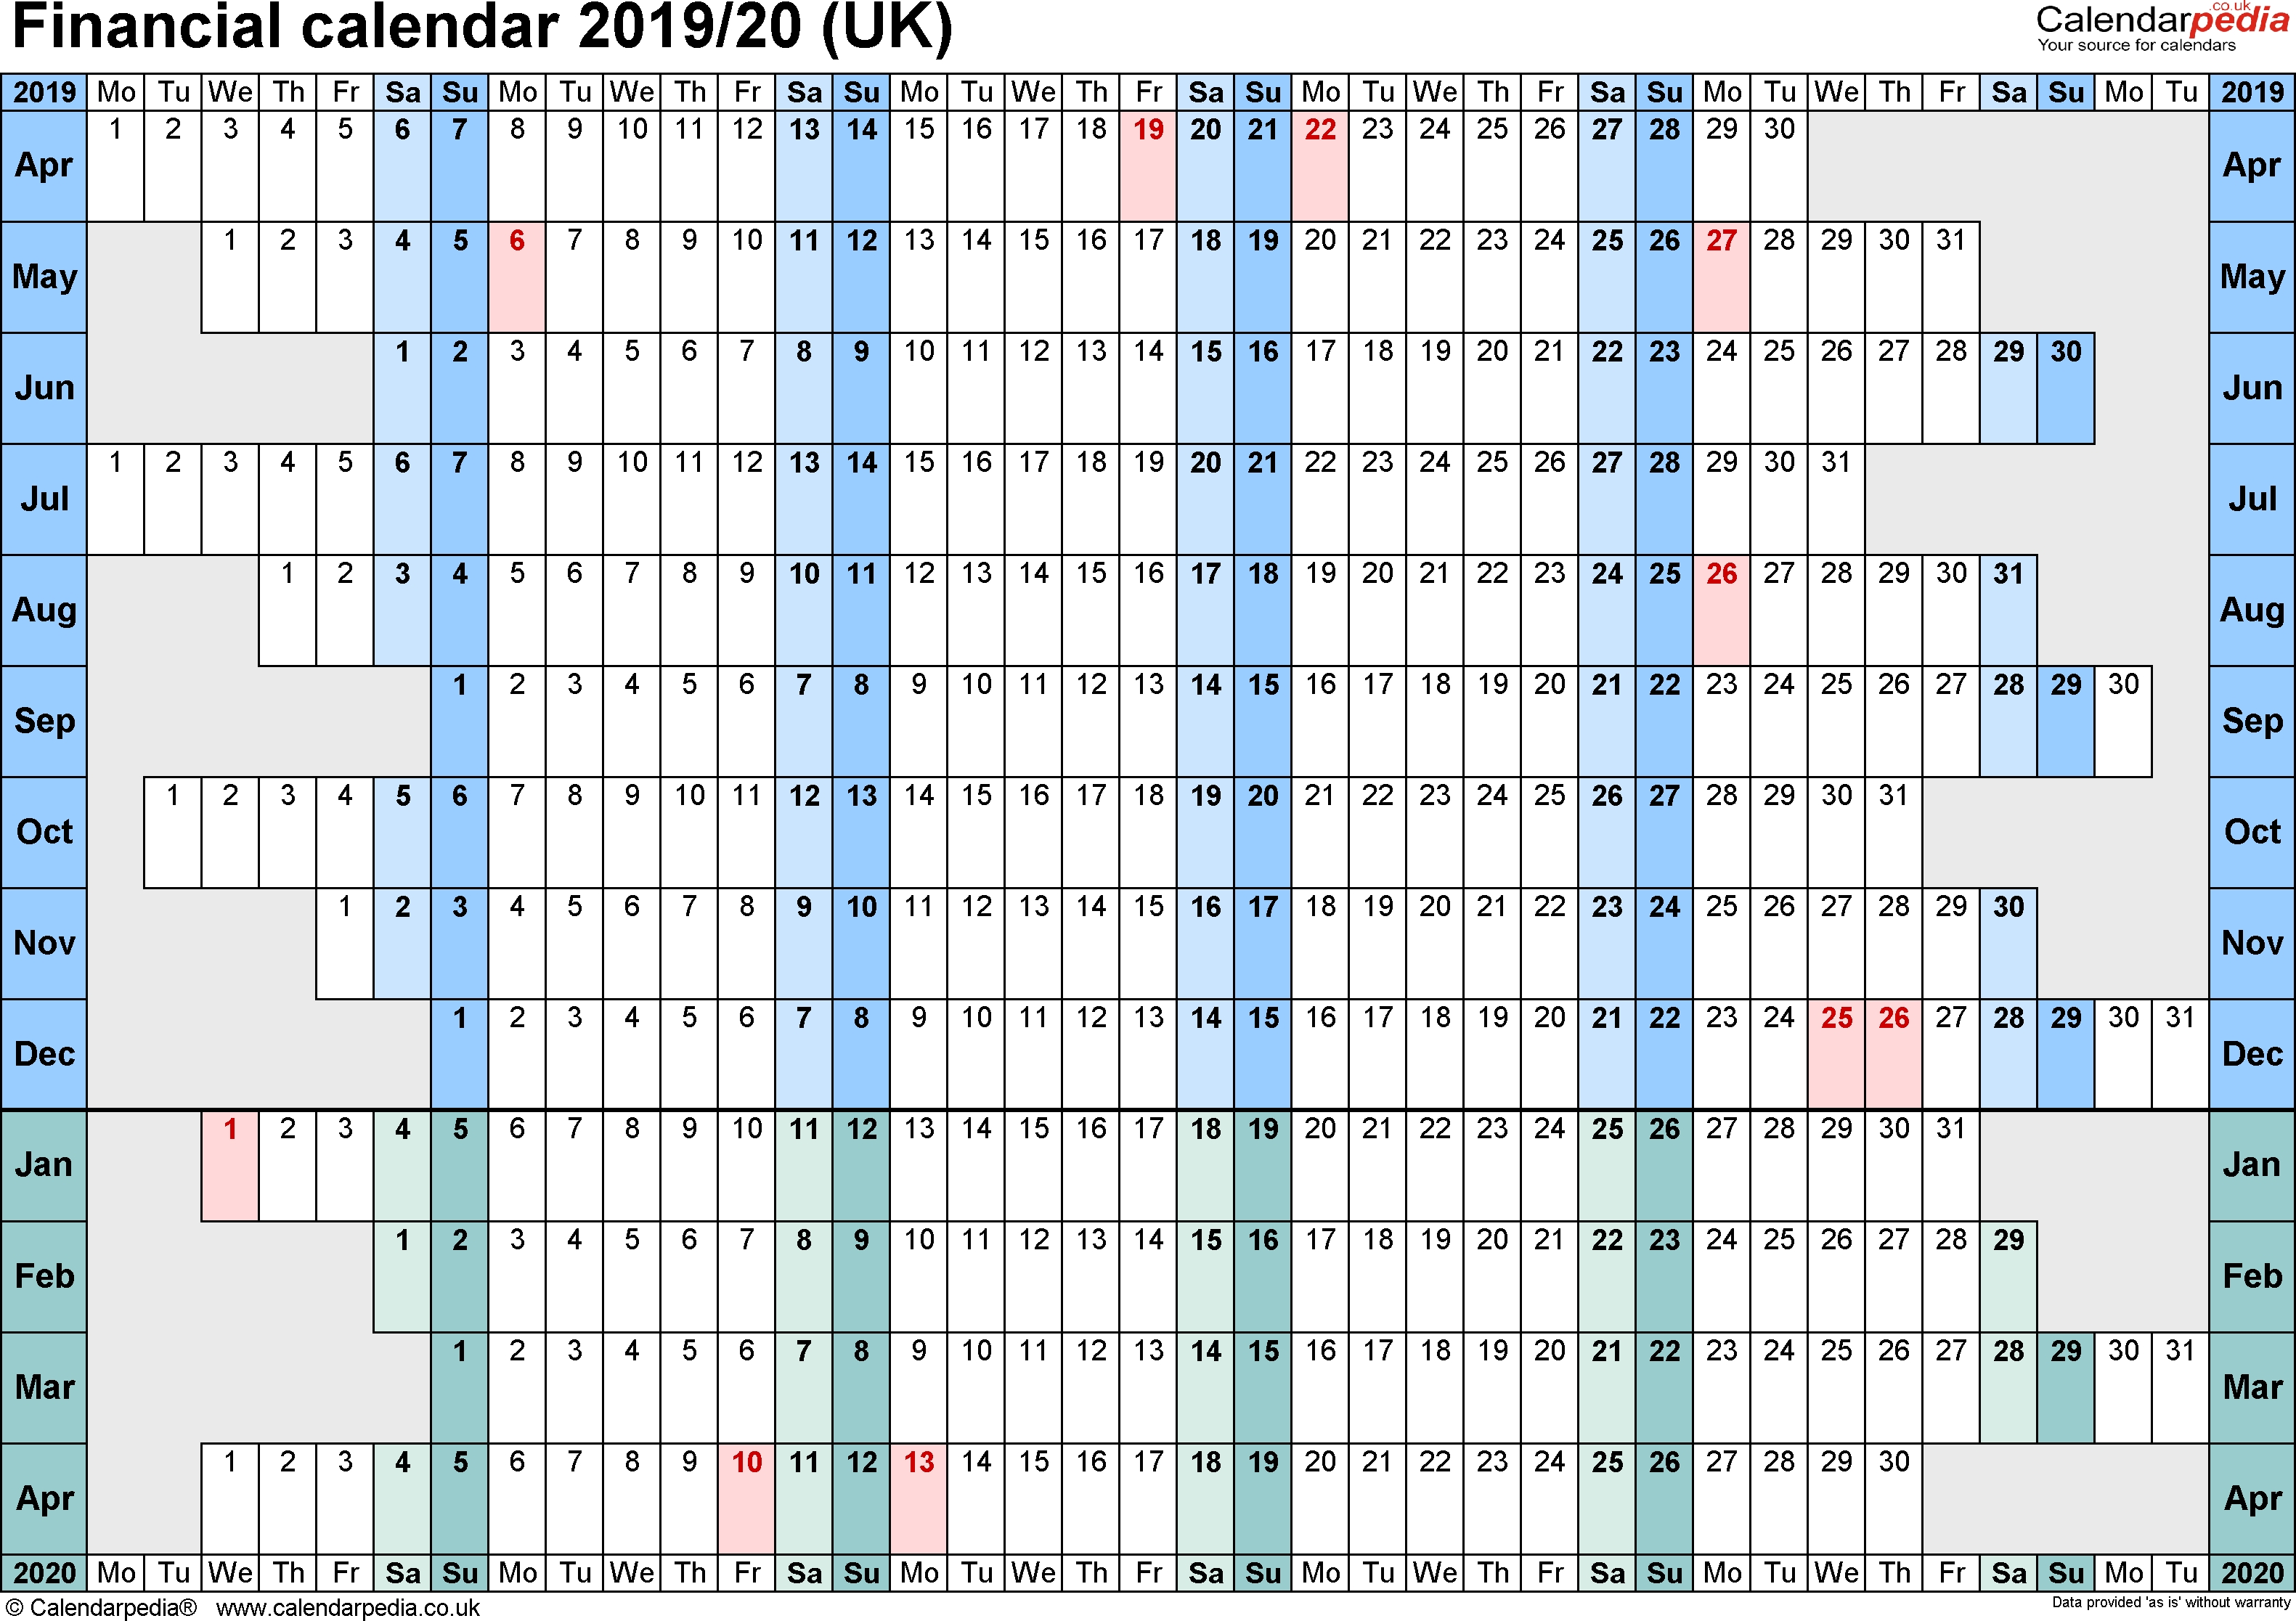 Financial Calendars 2019/20 (Uk) In Pdf Format in Hmrc Tax Week Calendar 2019 2020